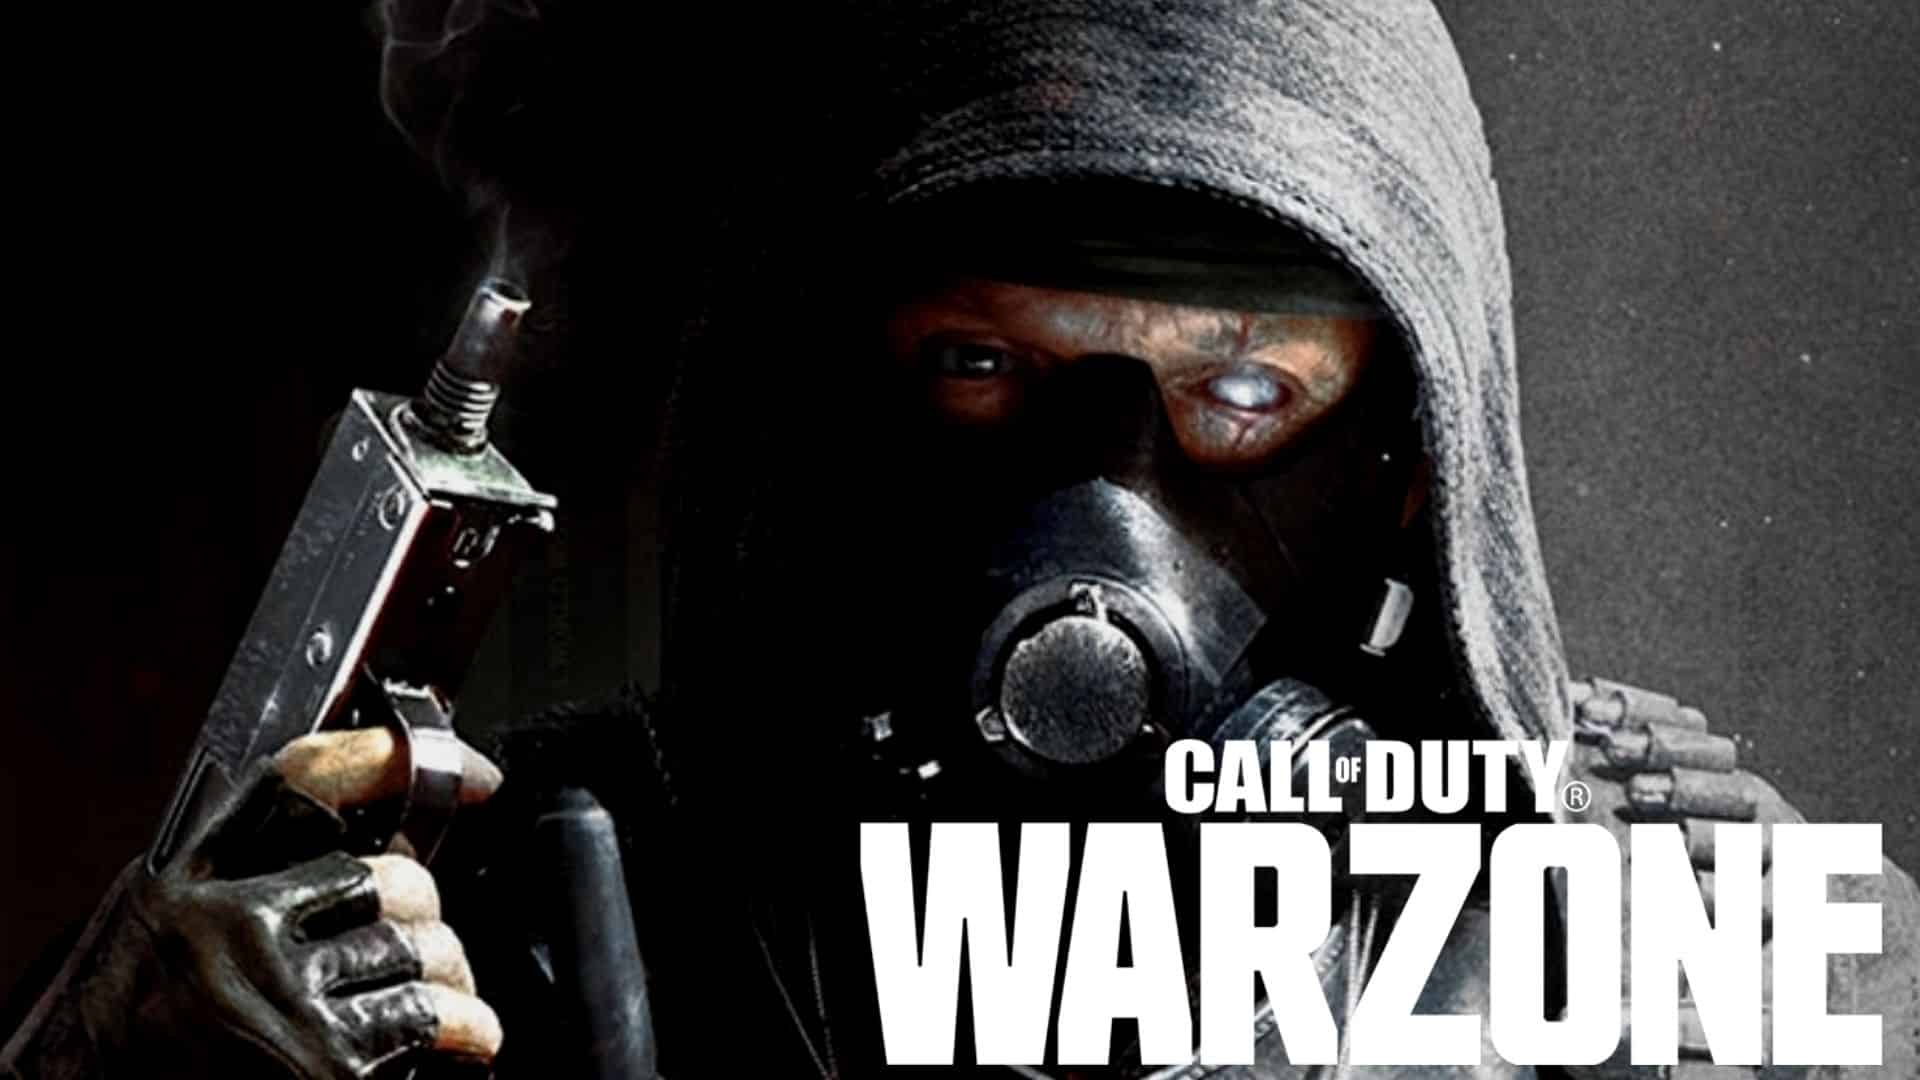 Call of Duty Warzone's Best MAC-10 Class - Discover Season 1's Most Powerful Weapon